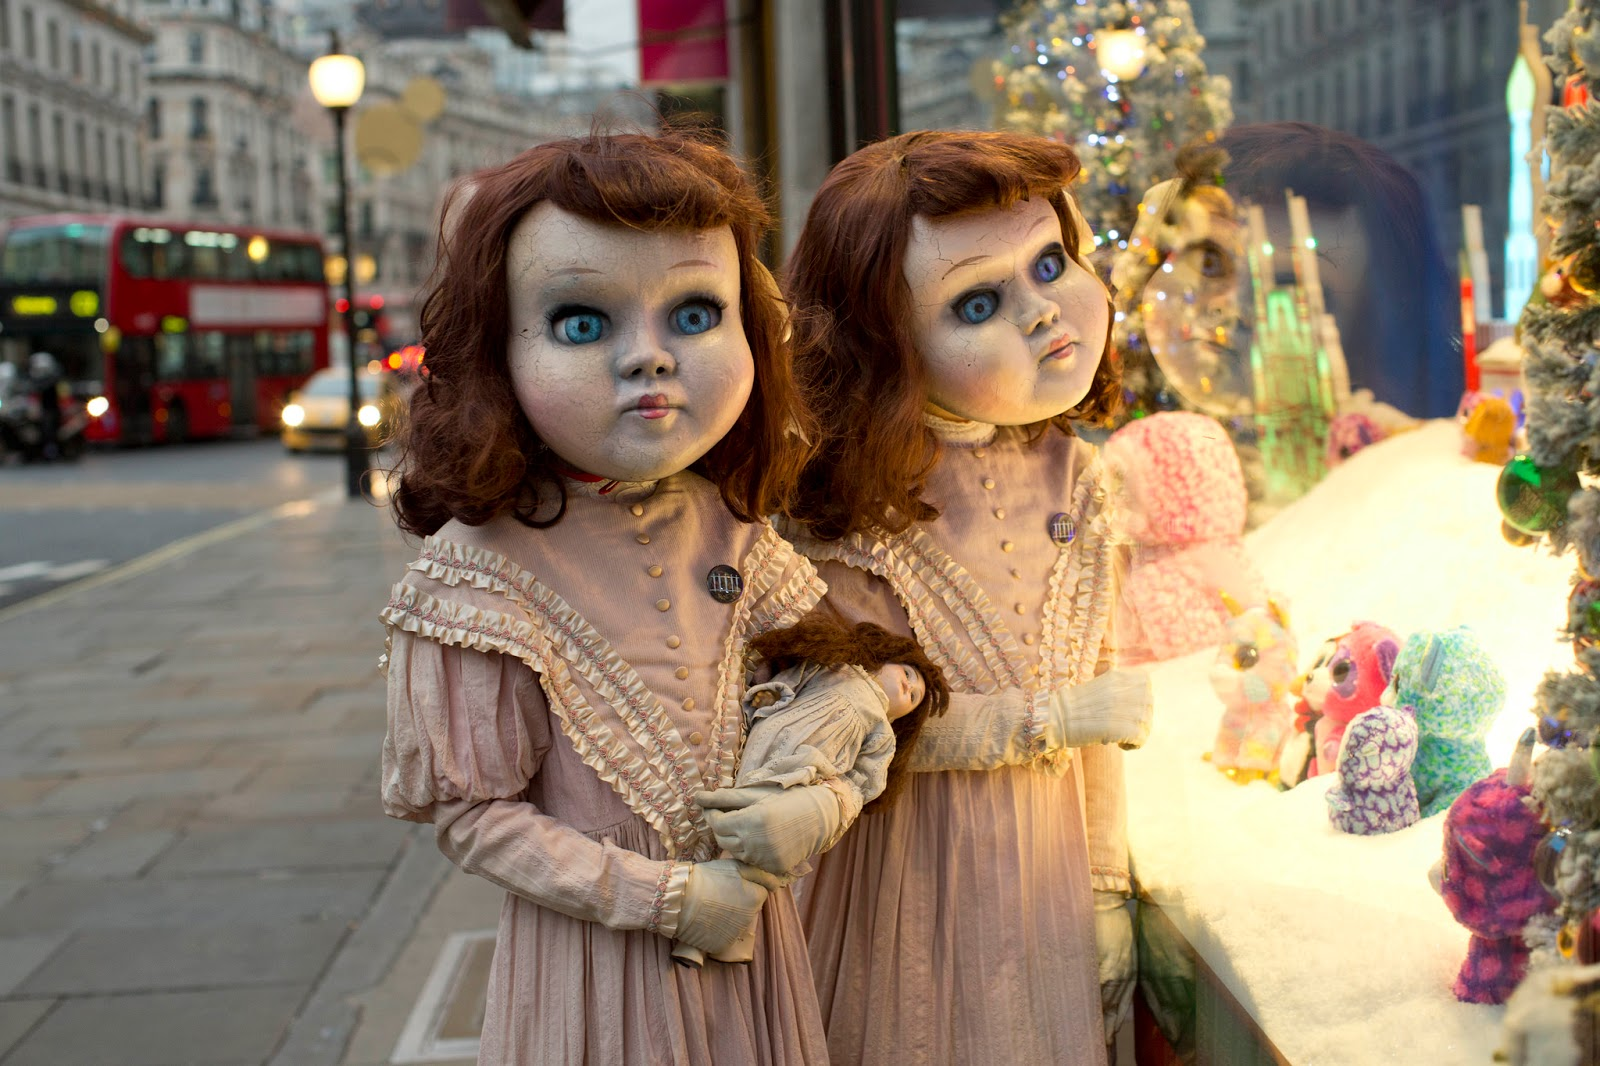 Congratulate, remarkable life size dolls for adults idea advise